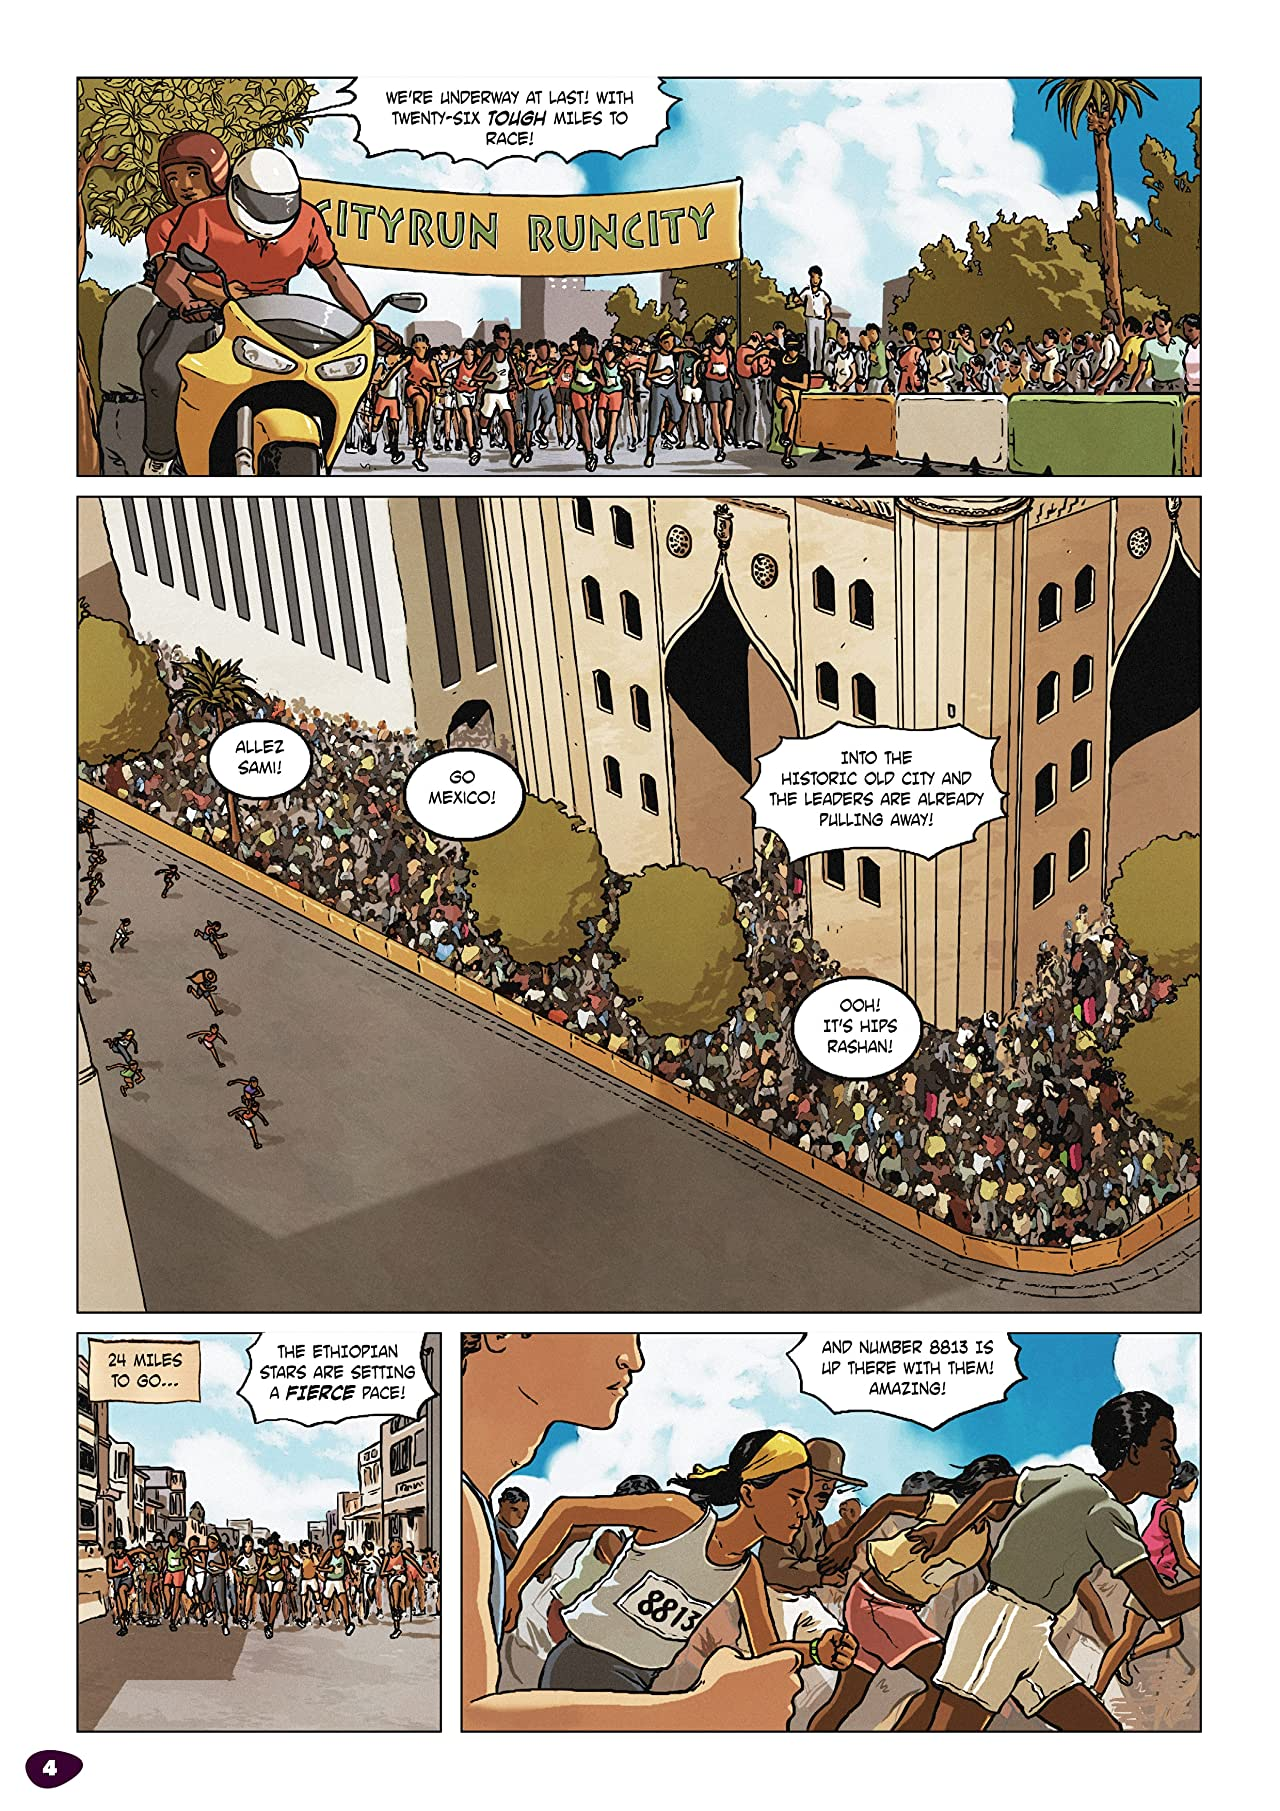 The Phoenix #175: The Weekly Story Comic